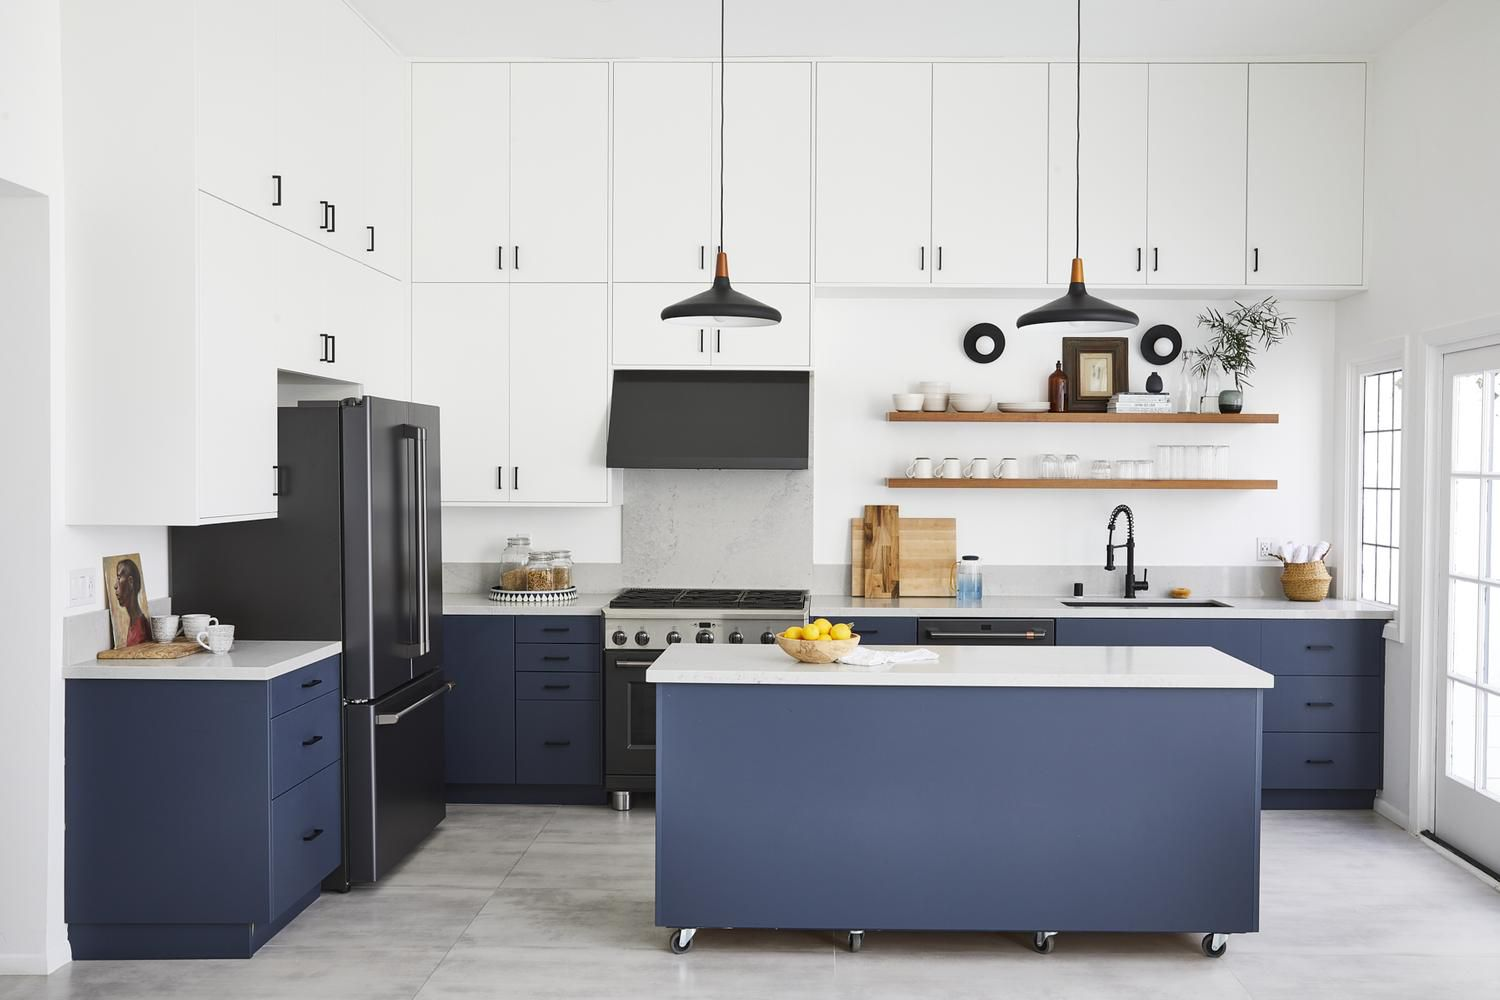 A two-tone kitchen with white and navy IKEA kitchen cabinets